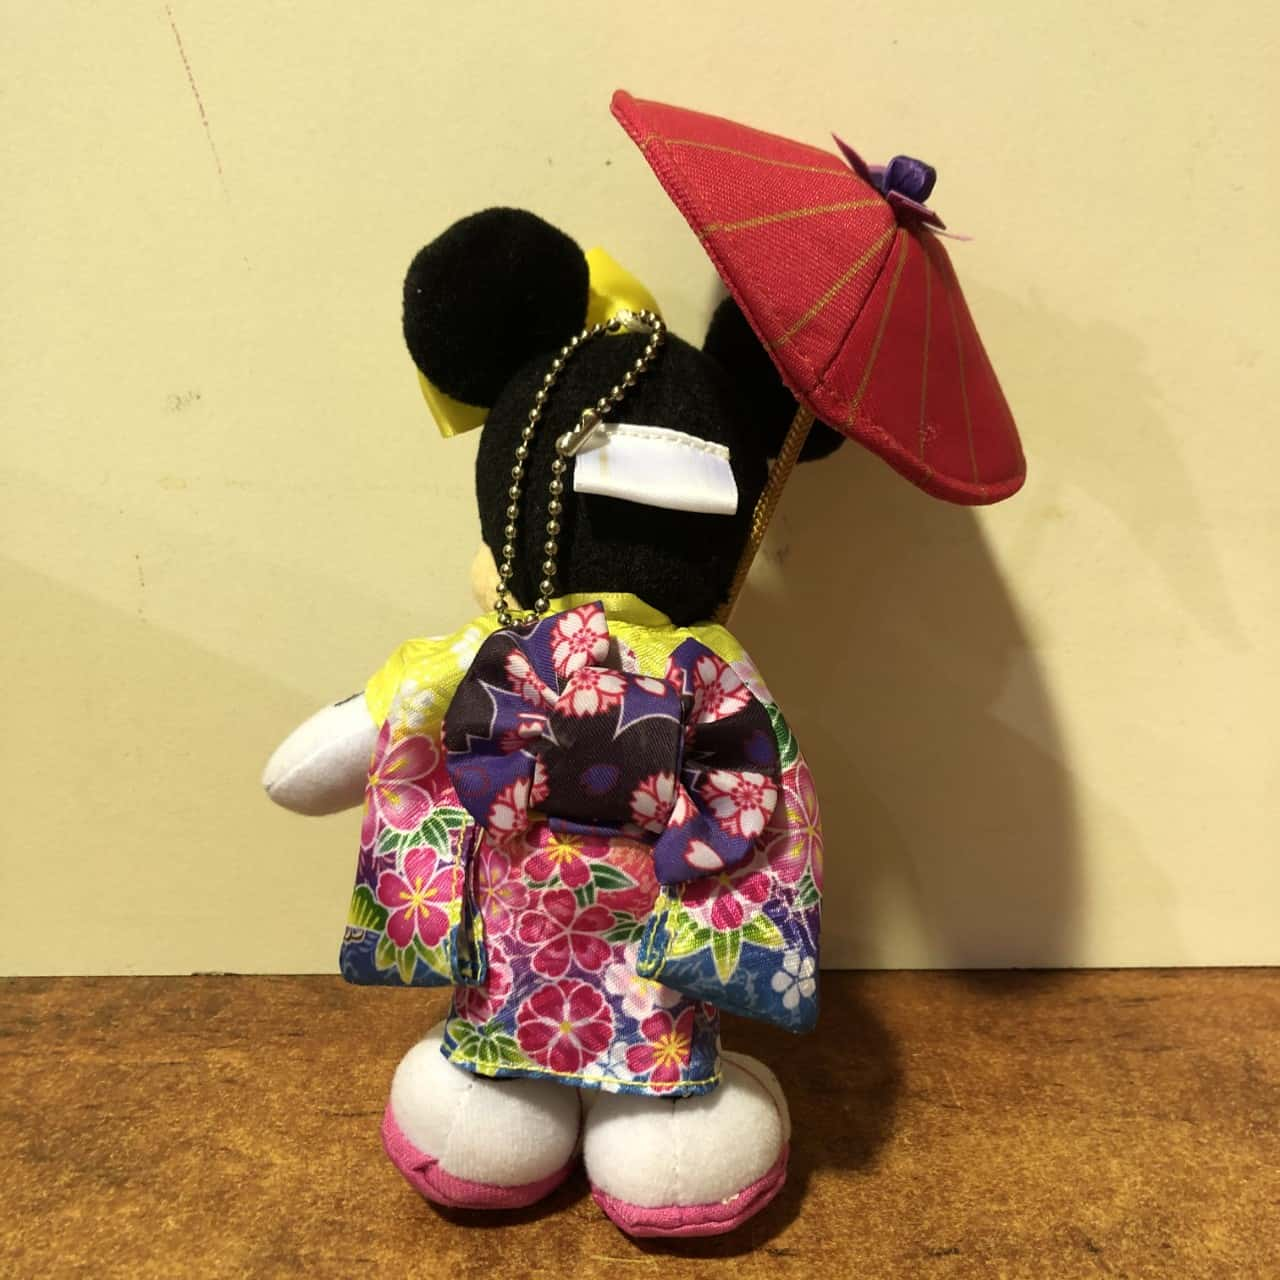 'REDUCED' Tokyo Minnie Mouse Toy